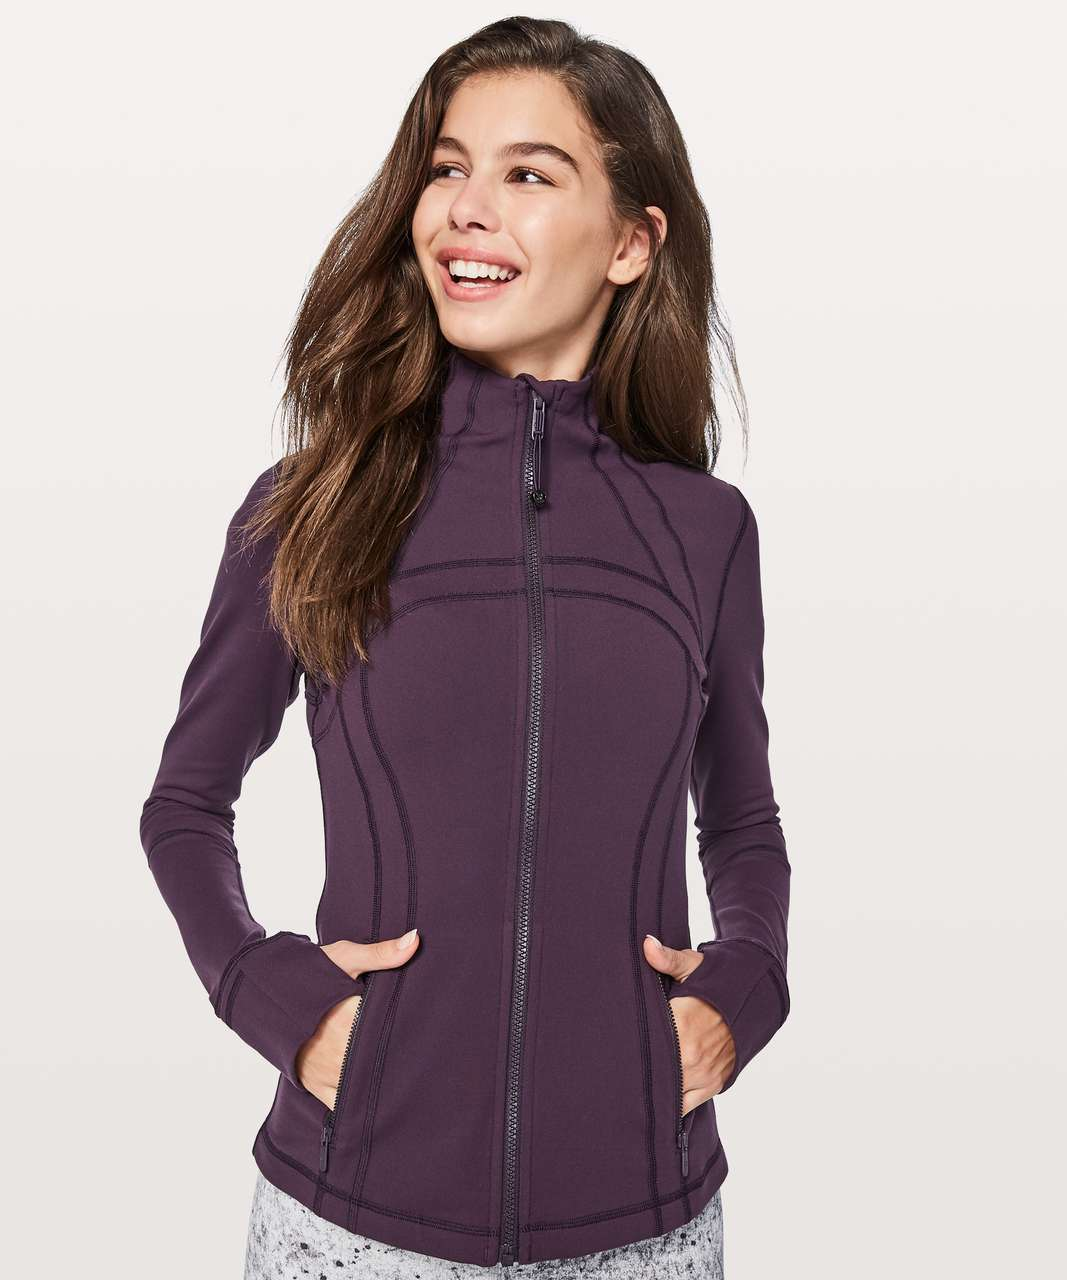 Lululemon Define Jacket *Brushed - Deep Zinfandel